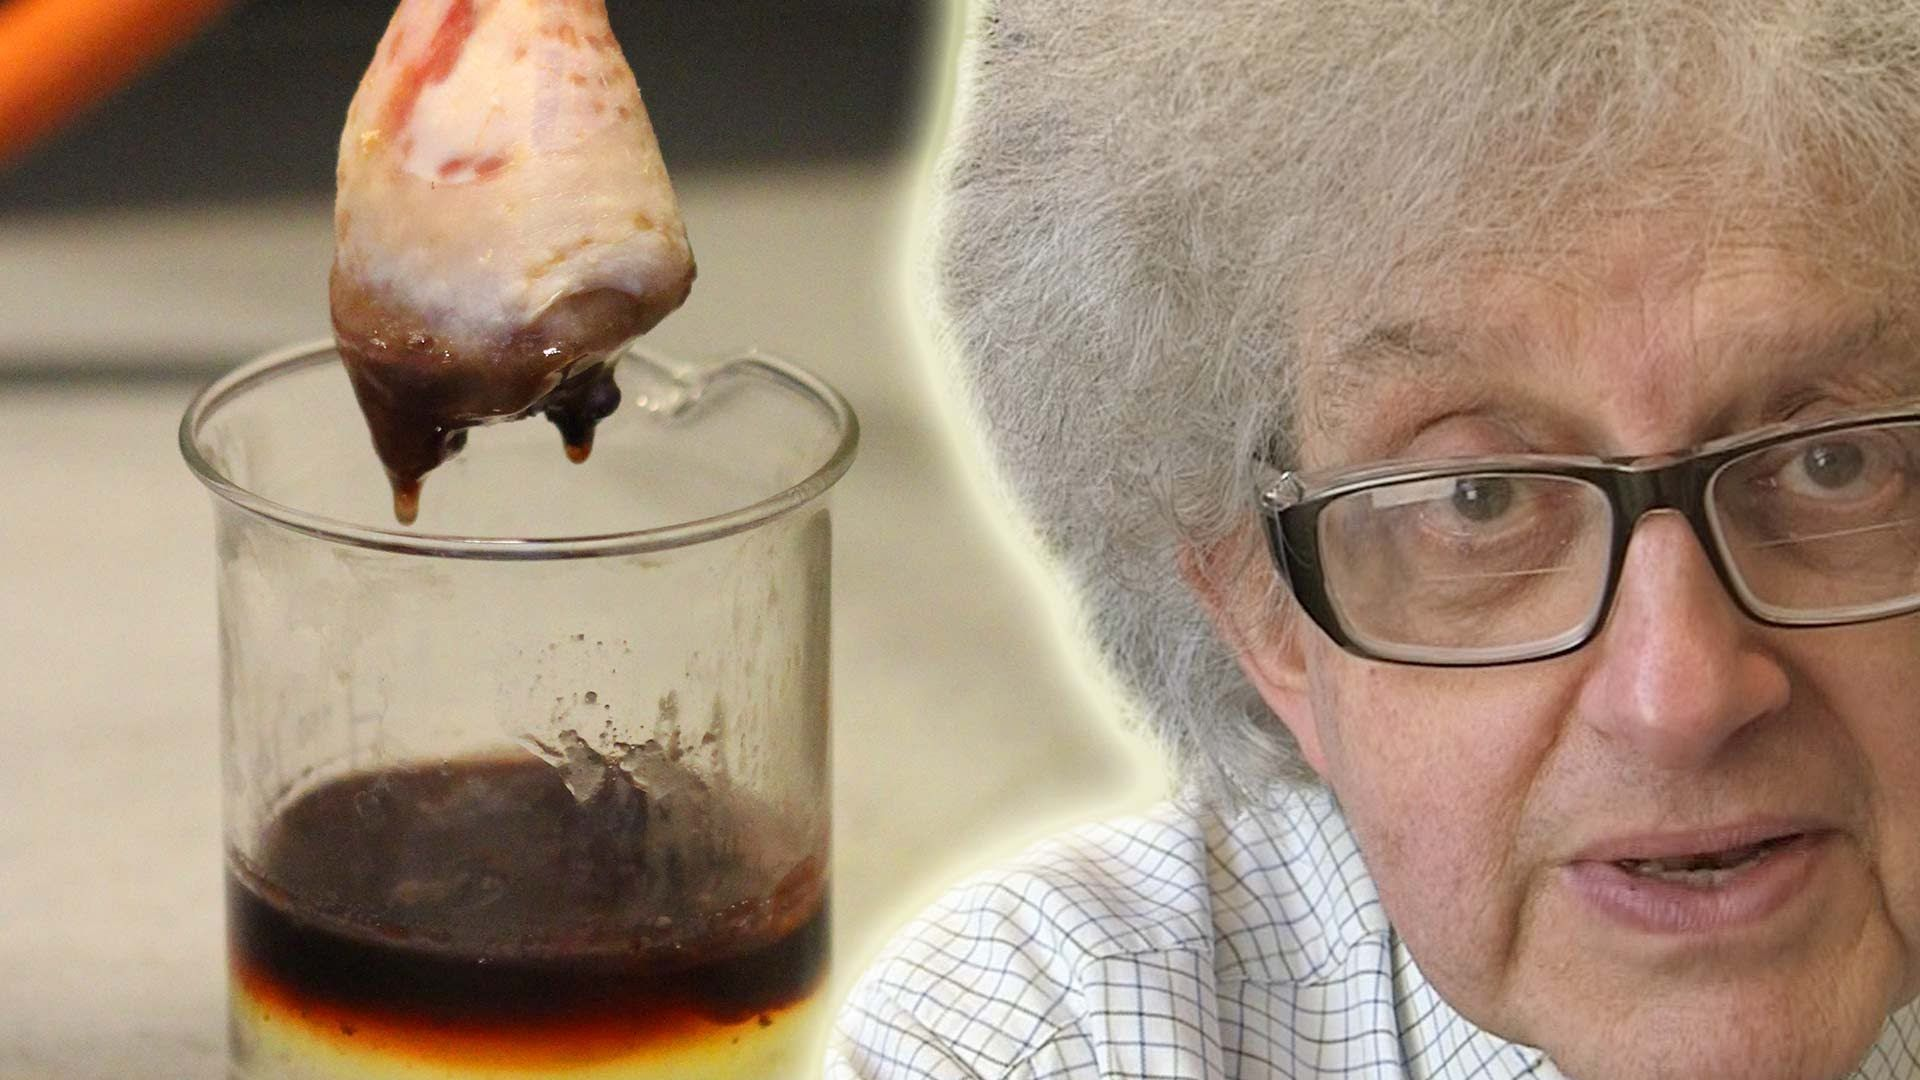 Flesh eating hydrofluoric acid periodic table of videos because flesh eating hydrofluoric acid periodic table of videos urtaz Images